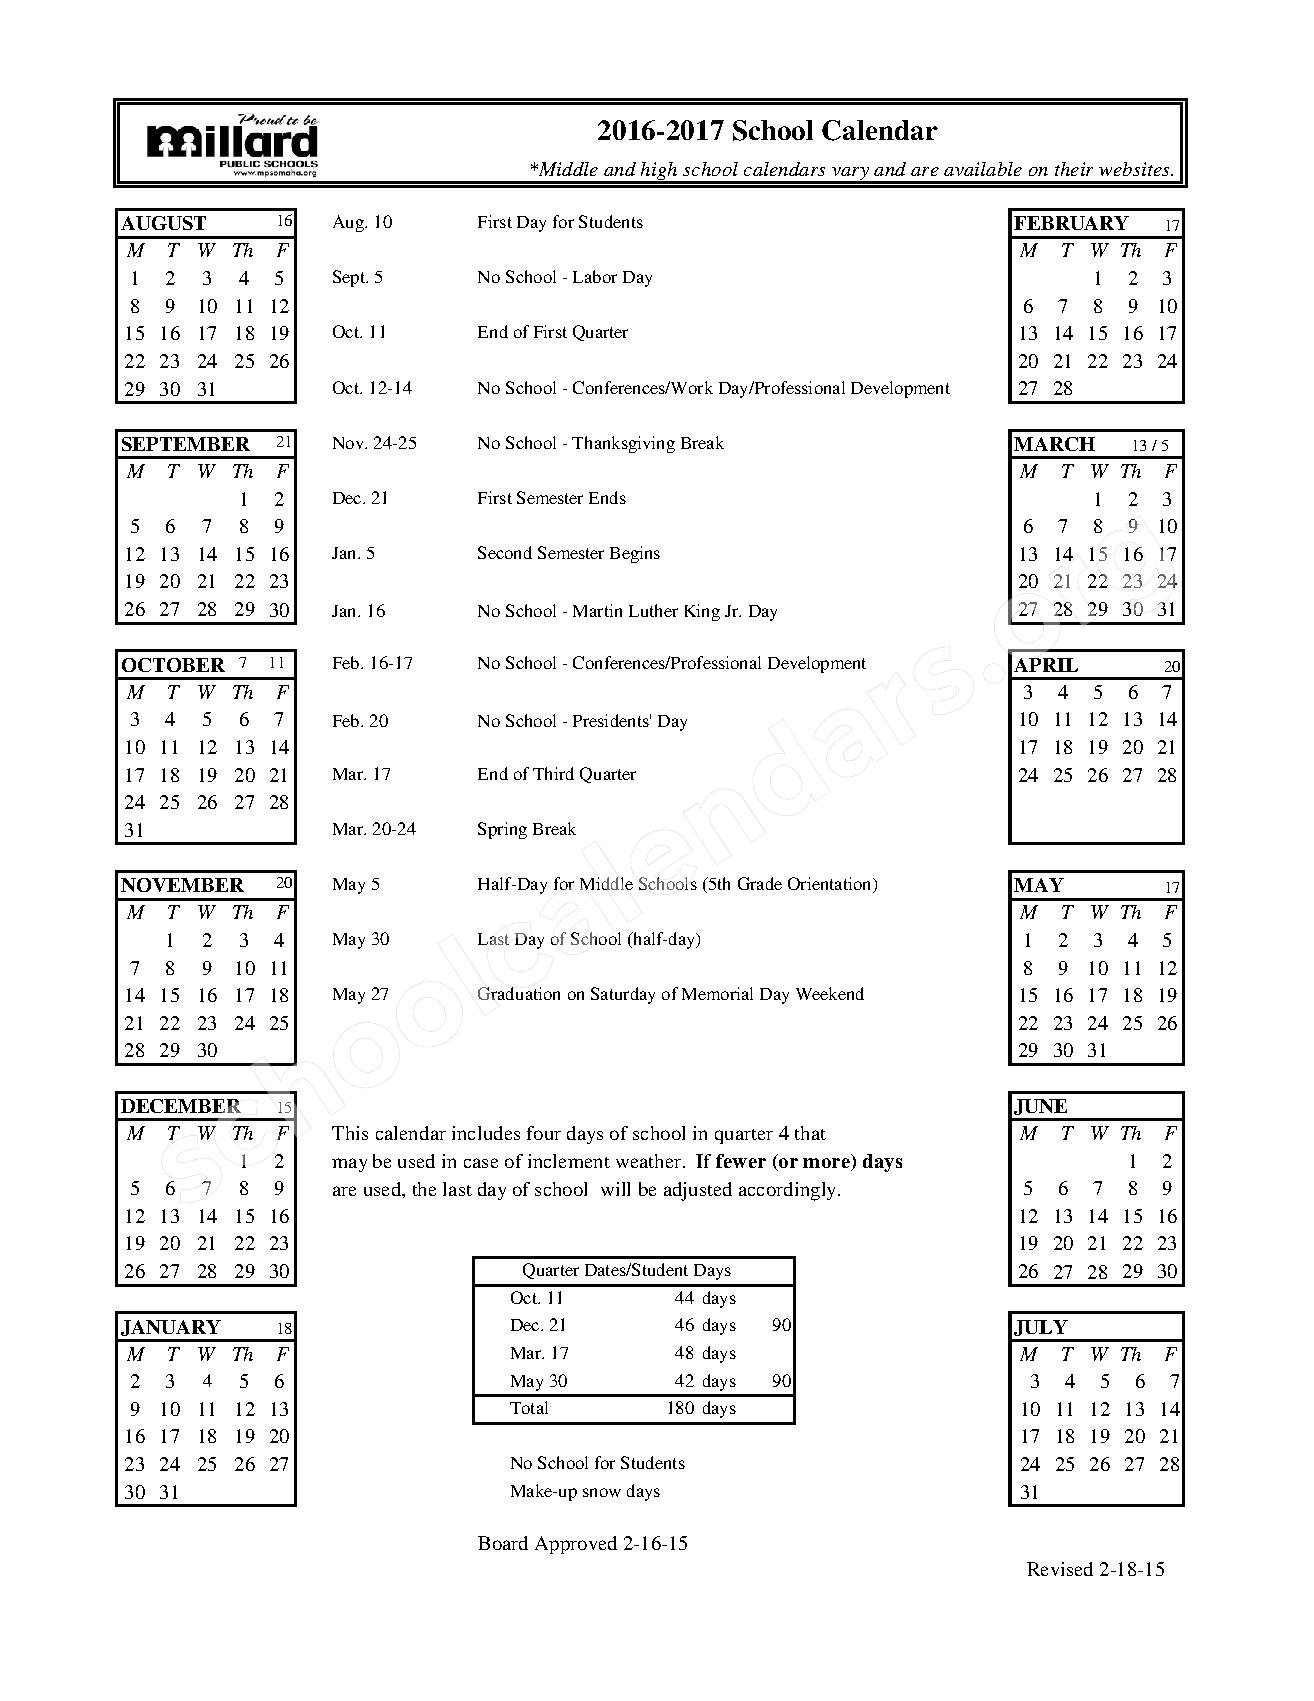 2016 - 2017 School Calendar – Kiewit Middle School – page 1